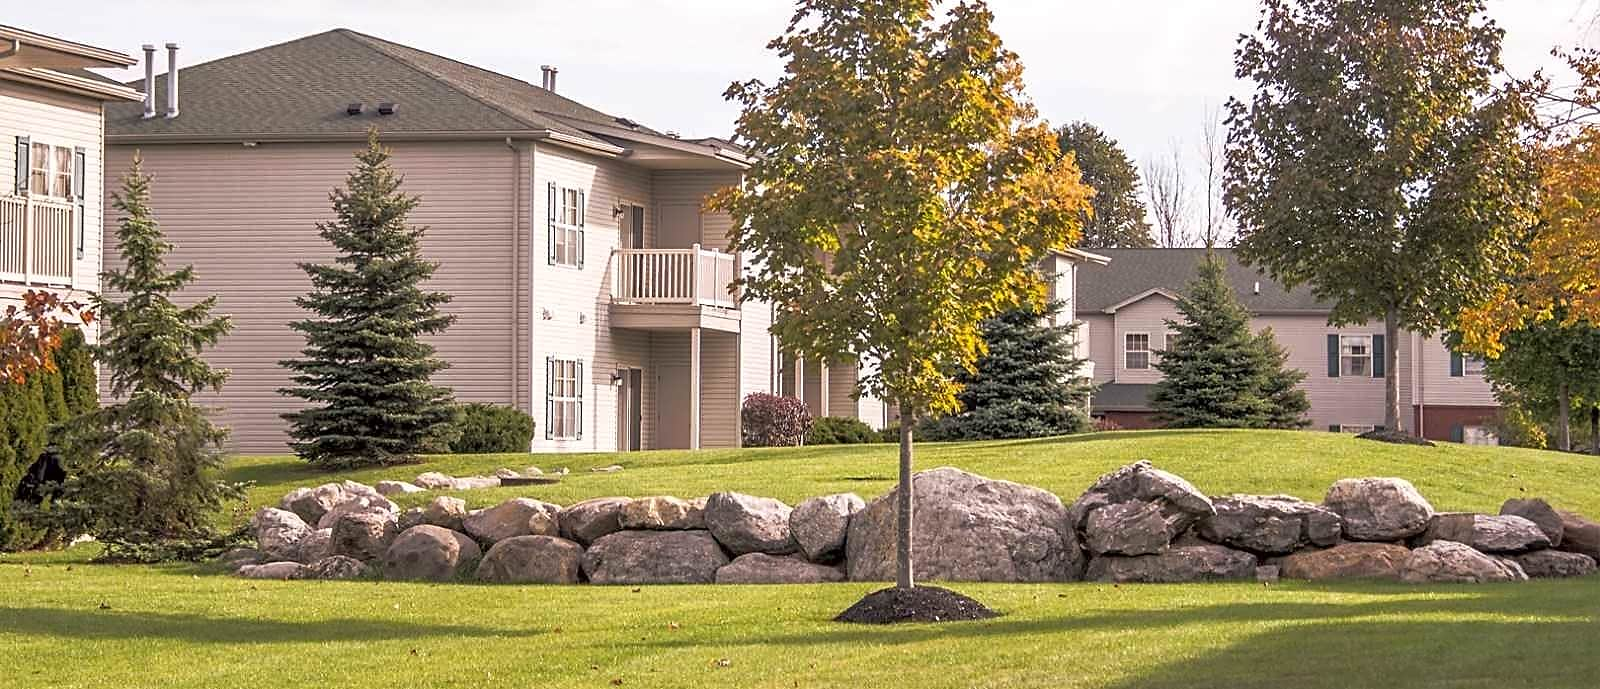 Apartments Near Hilbert Park Lane Luxury for Hilbert College Students in Hamburg, NY